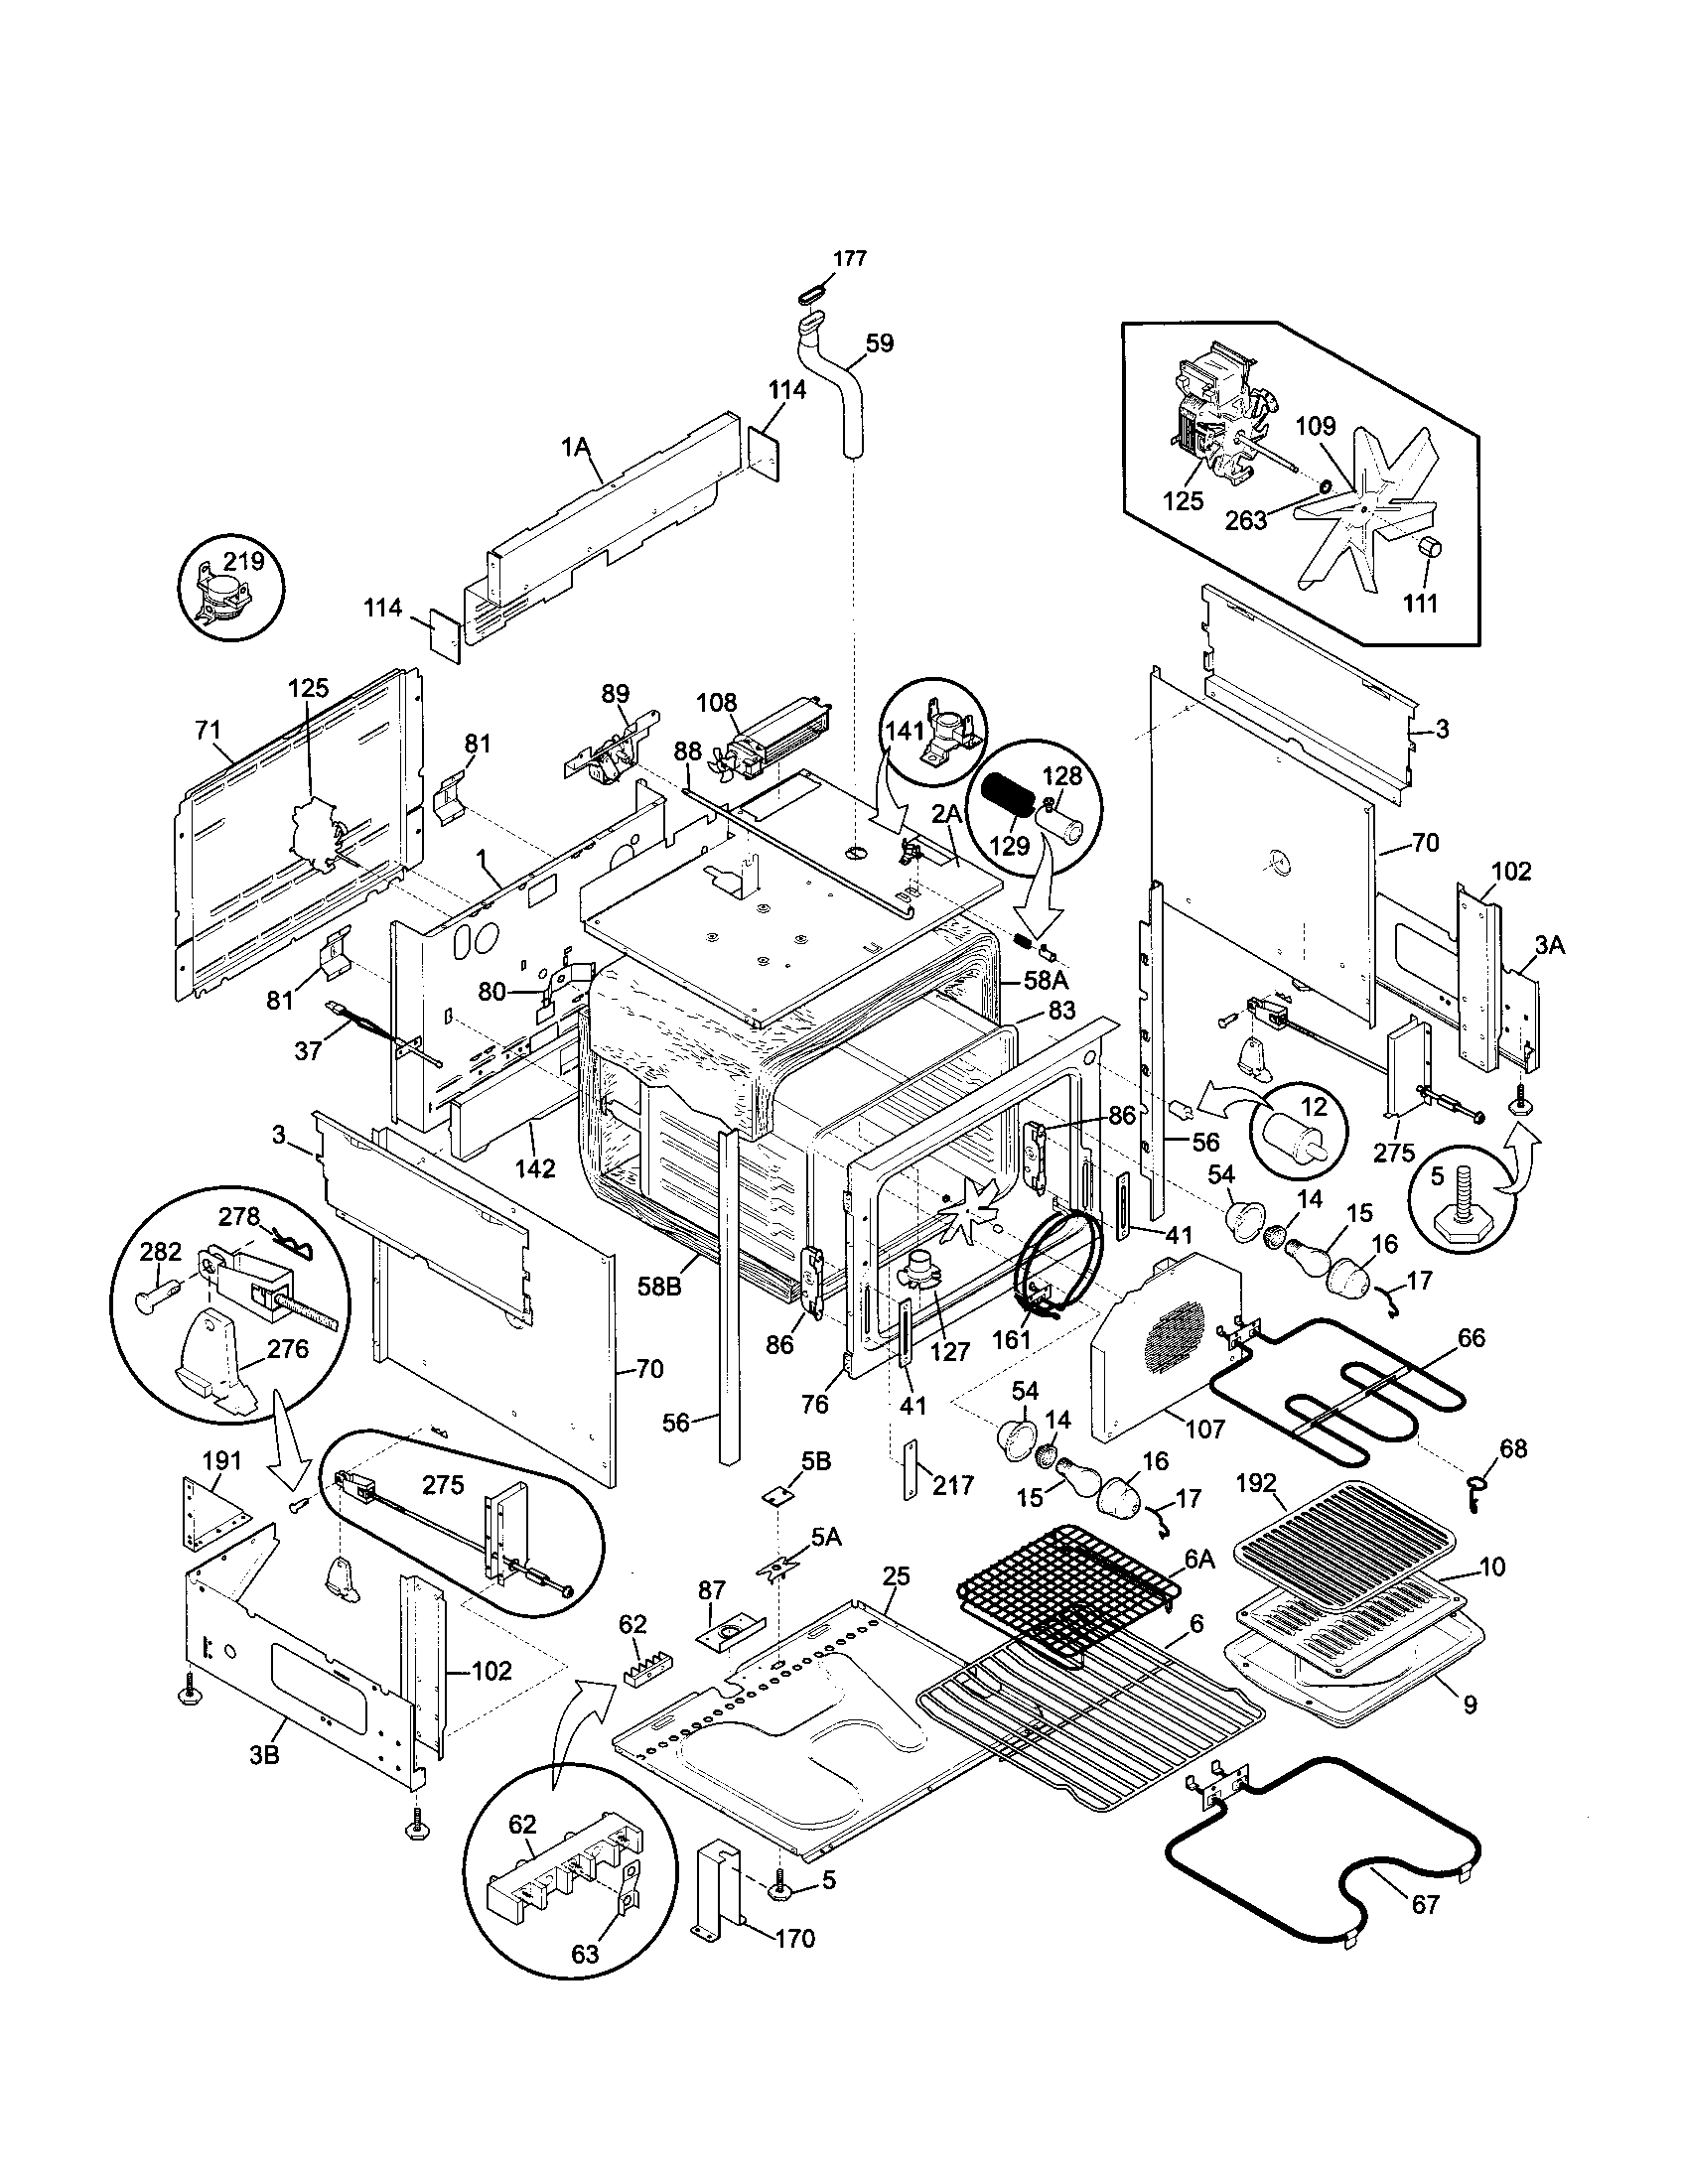 Kenmore Electric Dryer Wiring Diagram | Linkinx intended for Kenmore 80 Series Dryer Parts Diagram